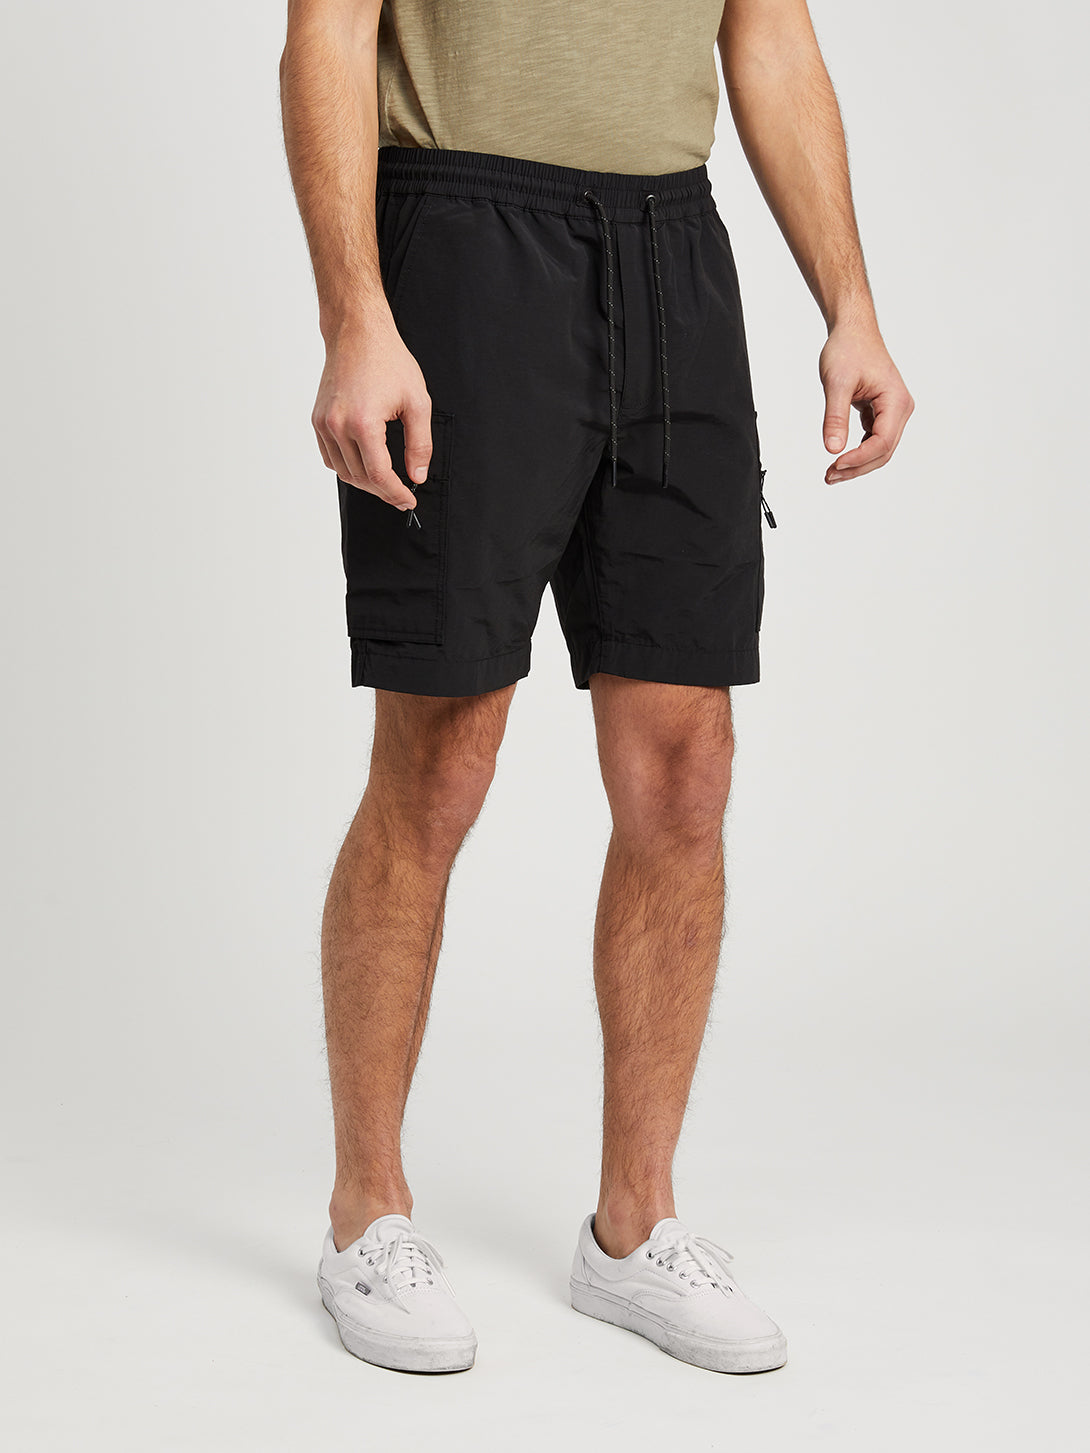 JET BLACK shorts for men marlo shorts ons clothing